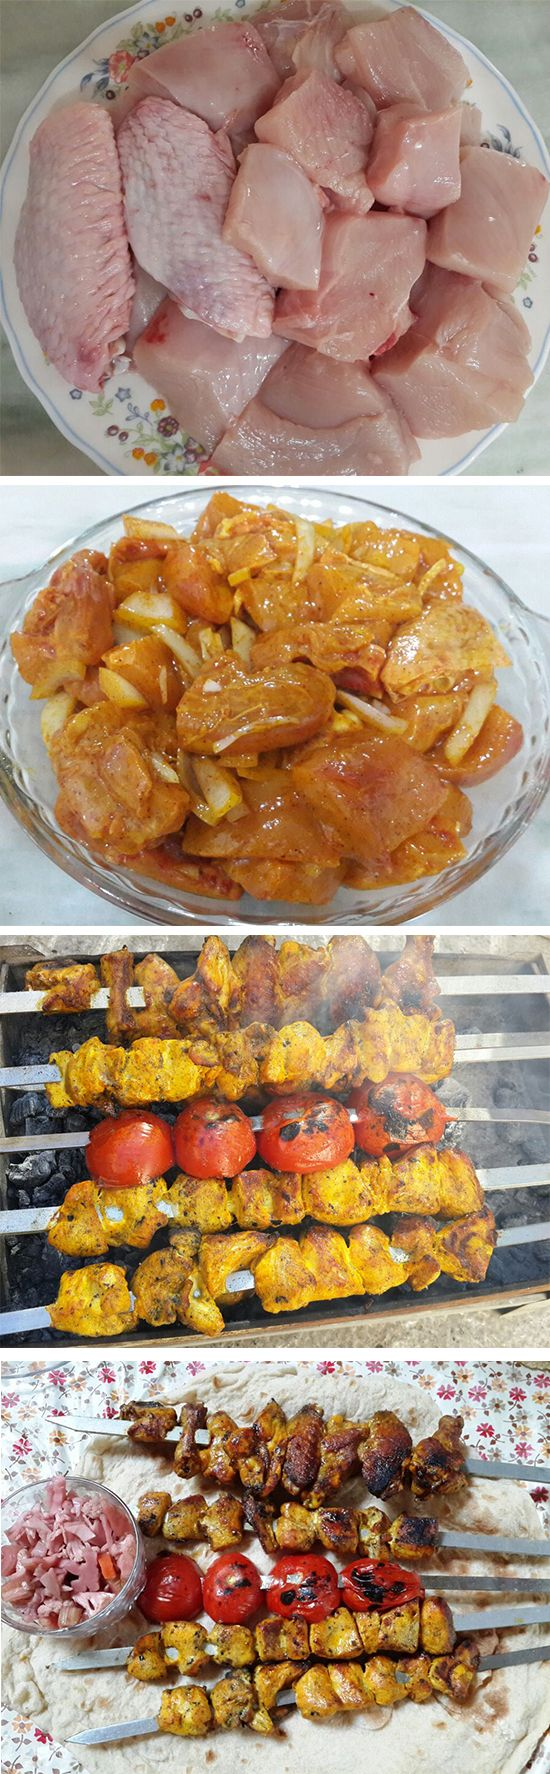 This kebab is usually served at parties such as wedding ceremonies. It is a food that is almost never eaten alone but with family or in a picnic. Complete recipe at: http://goo.gl/6Q0vW4